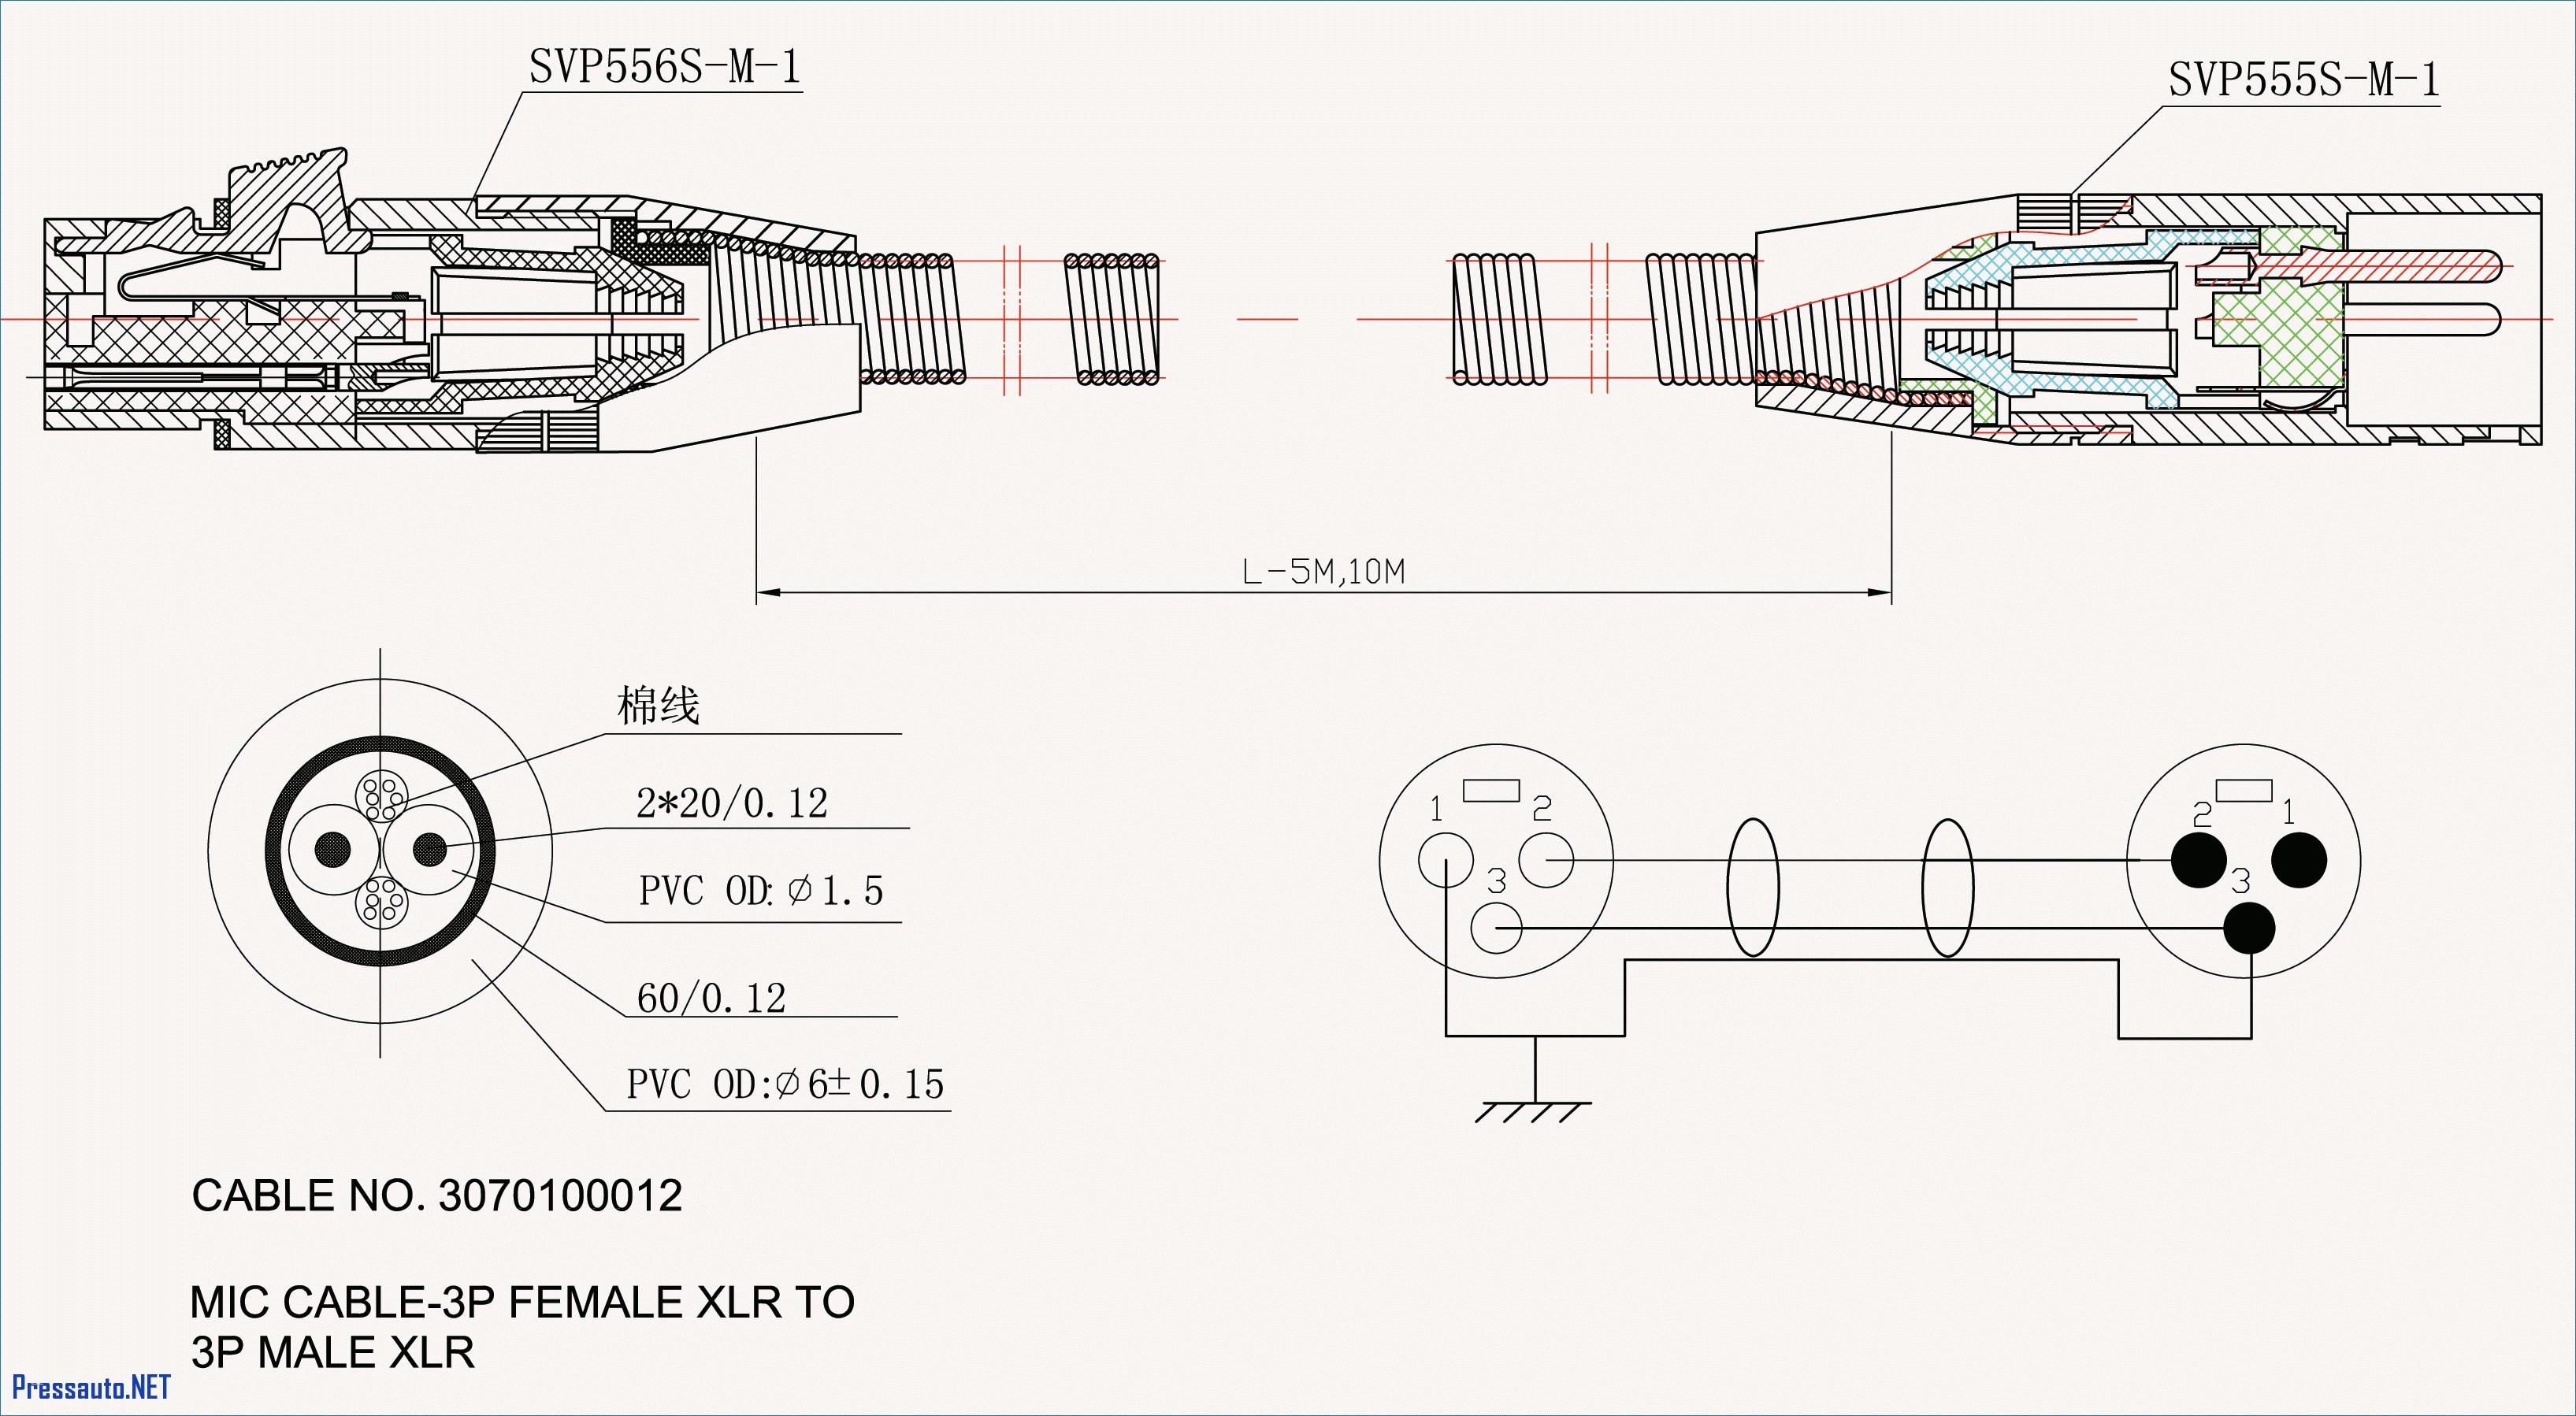 Aircraft Wiring Diagram Gallery on